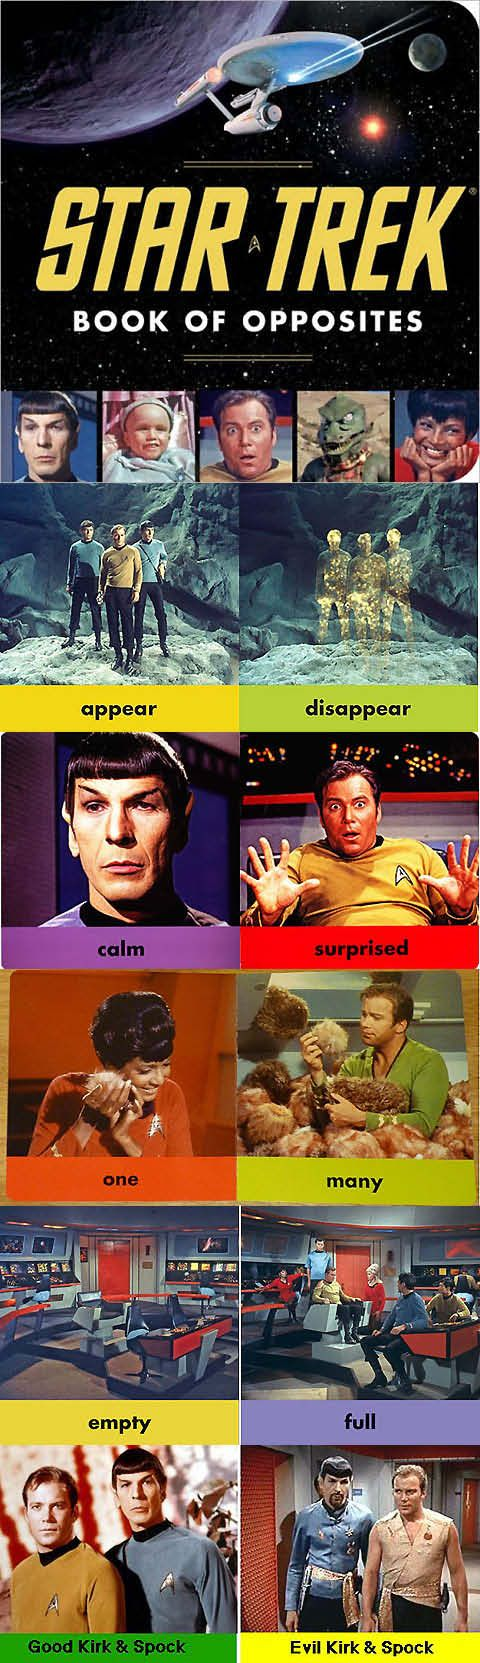 Star Trek Book of Opposites board book. Oh, I know what my mom's gag gift this Christmas is going to be.